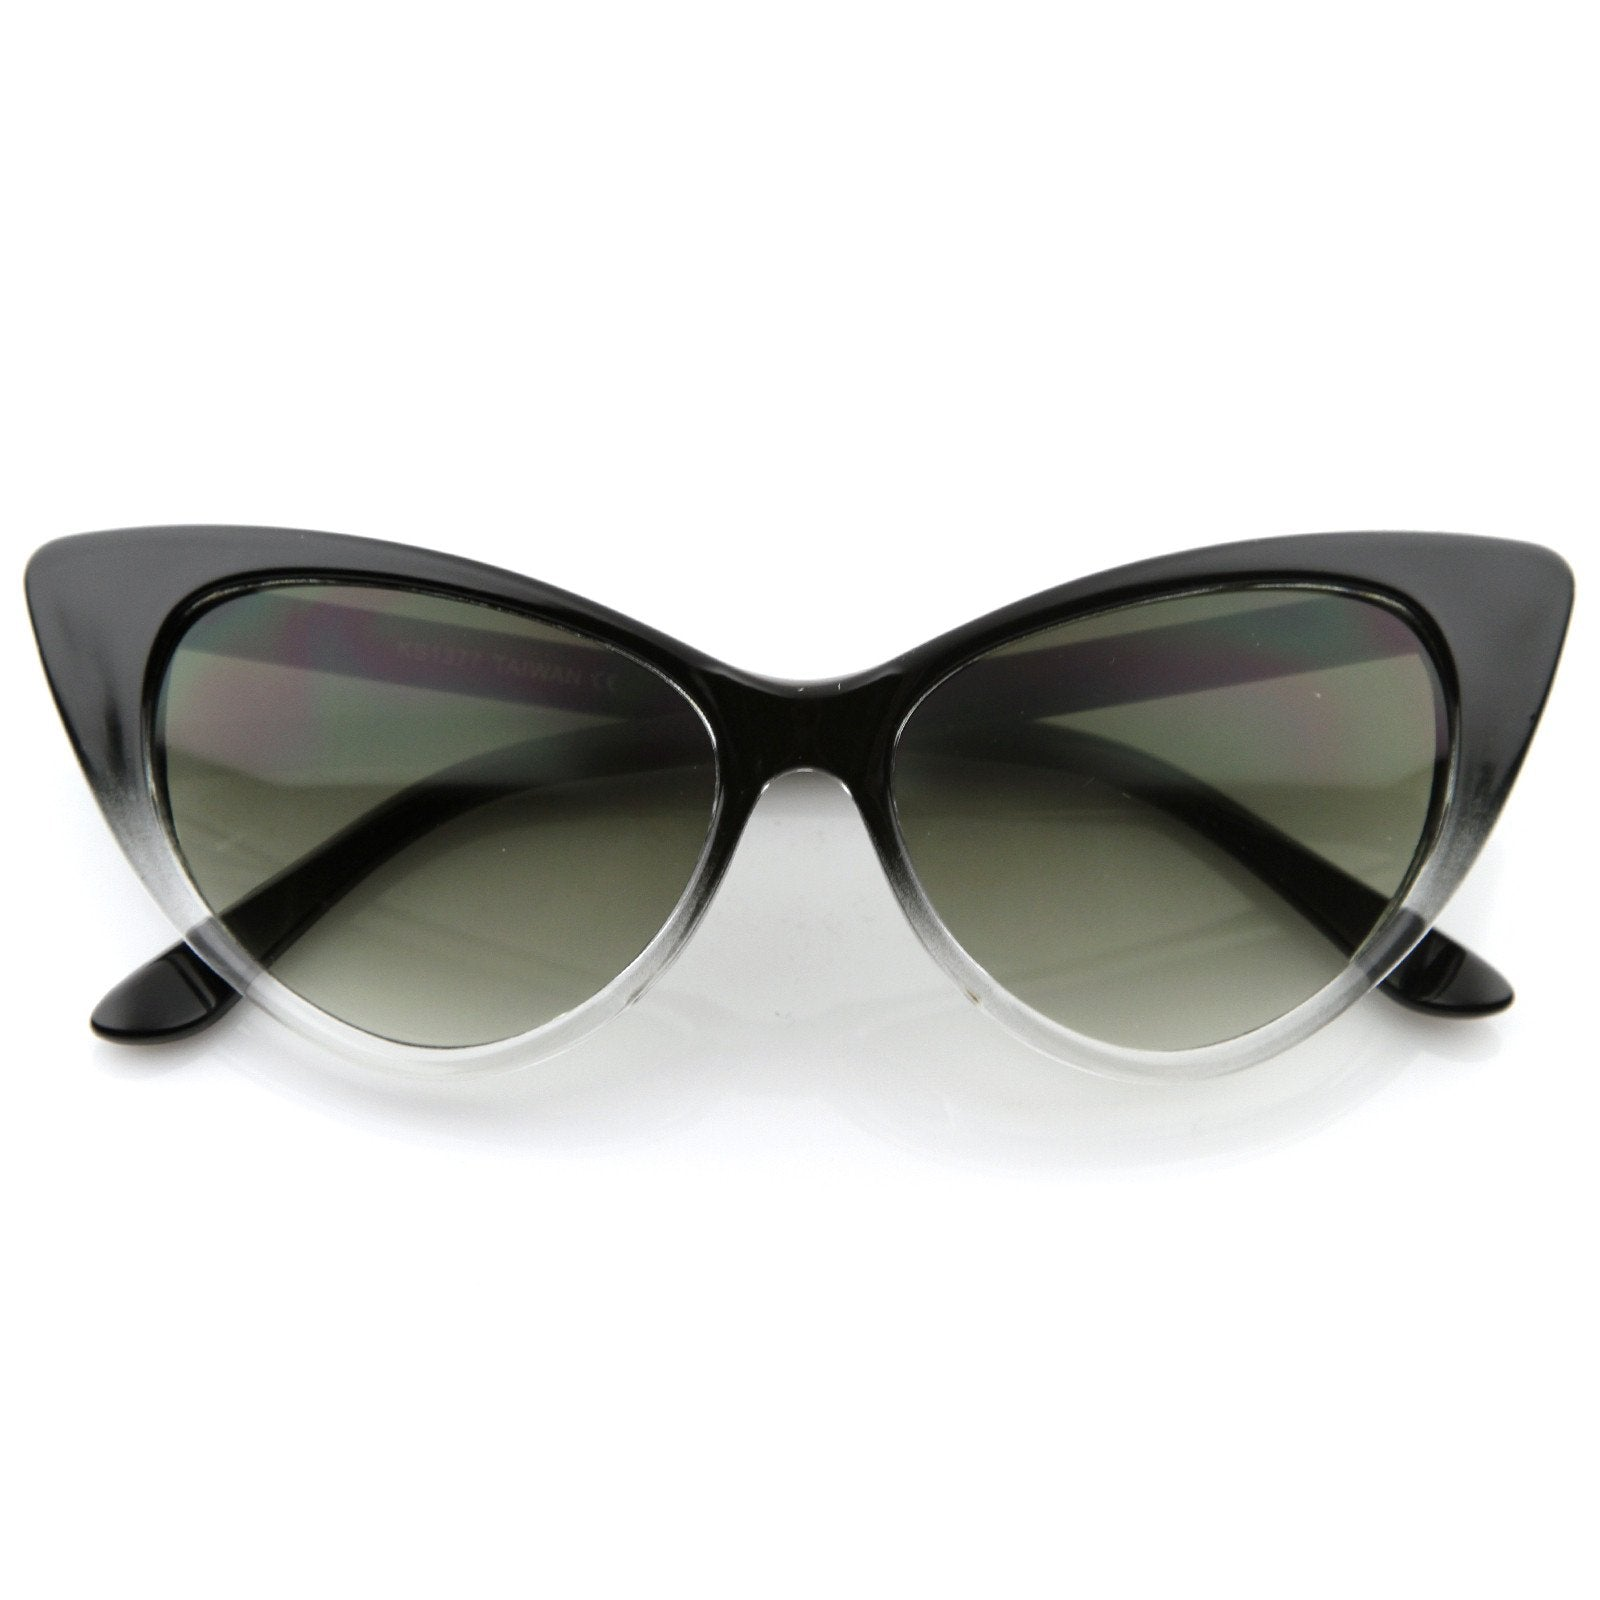 77f4303742 Retro 1950 s Pointed Cat Eye Fashion Sunglasses 8571